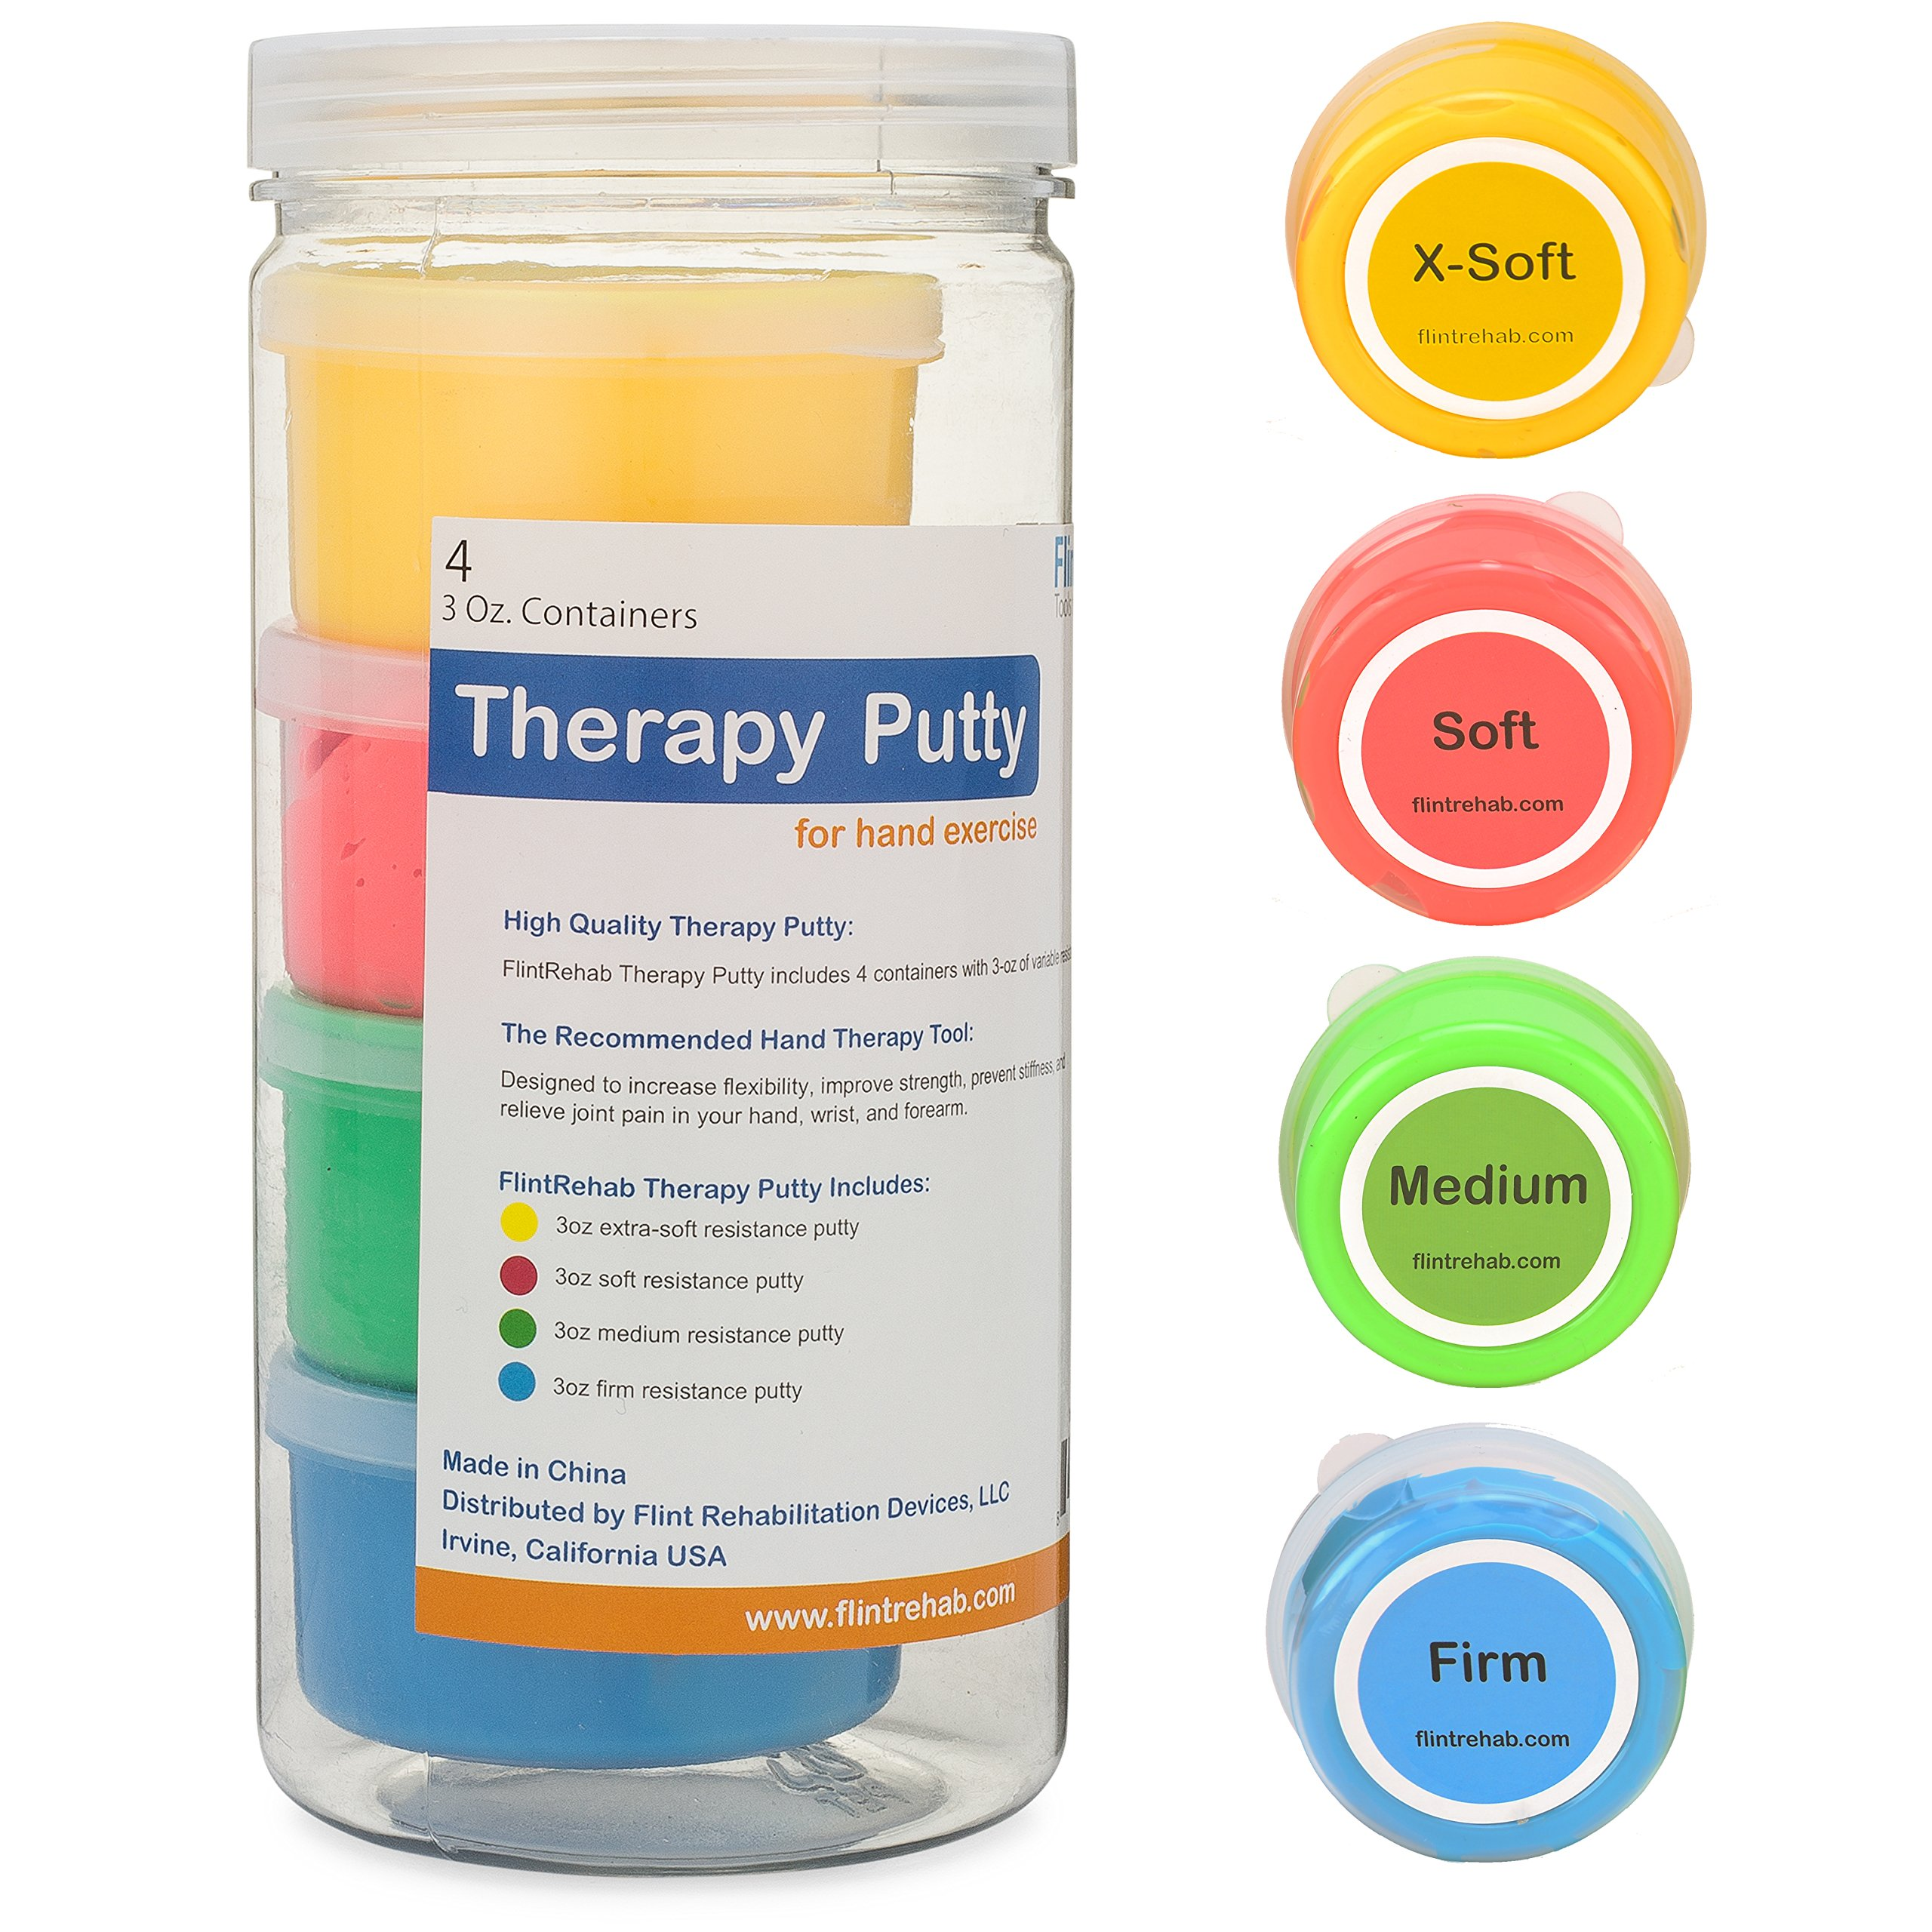 FlintRehab Premium Quality Therapy Putty (4 Pack, 3-oz Each) for Hand Exercise Rehab. Fidgeting, and Stress Relief by FlintRehab